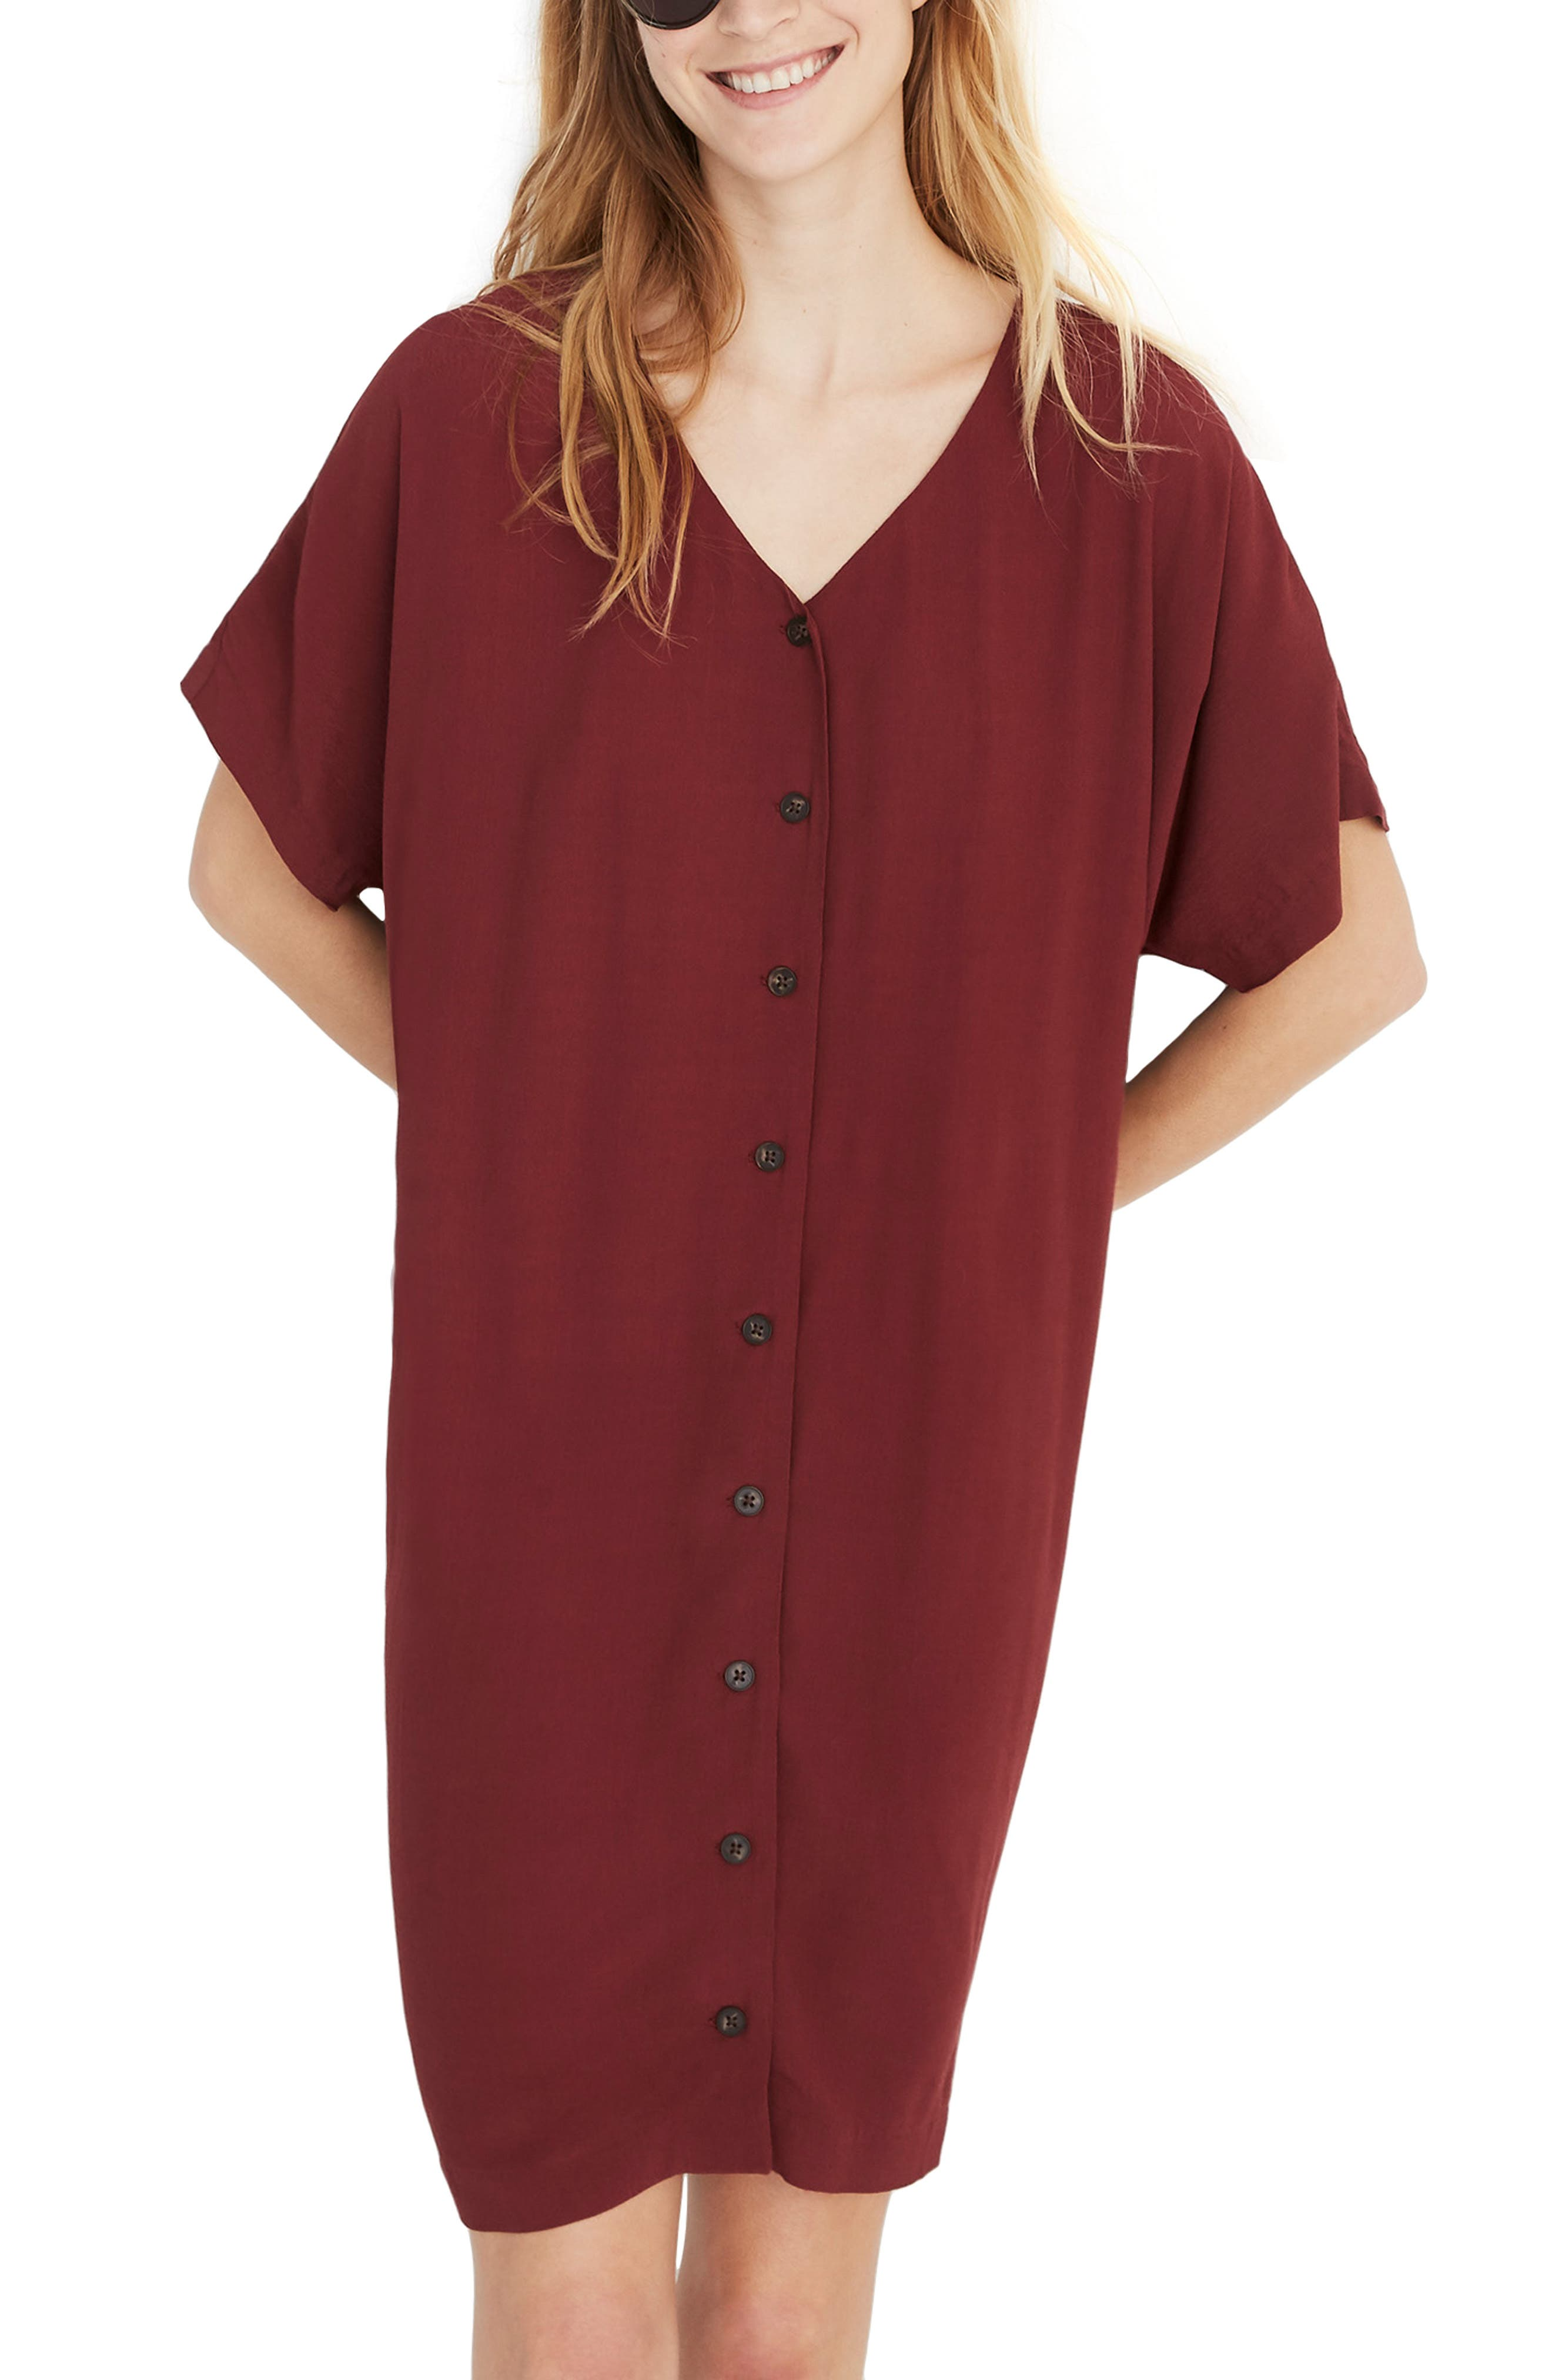 MADEWELL, Button Front Easy Dress, Main thumbnail 1, color, RICH BURGUNDY